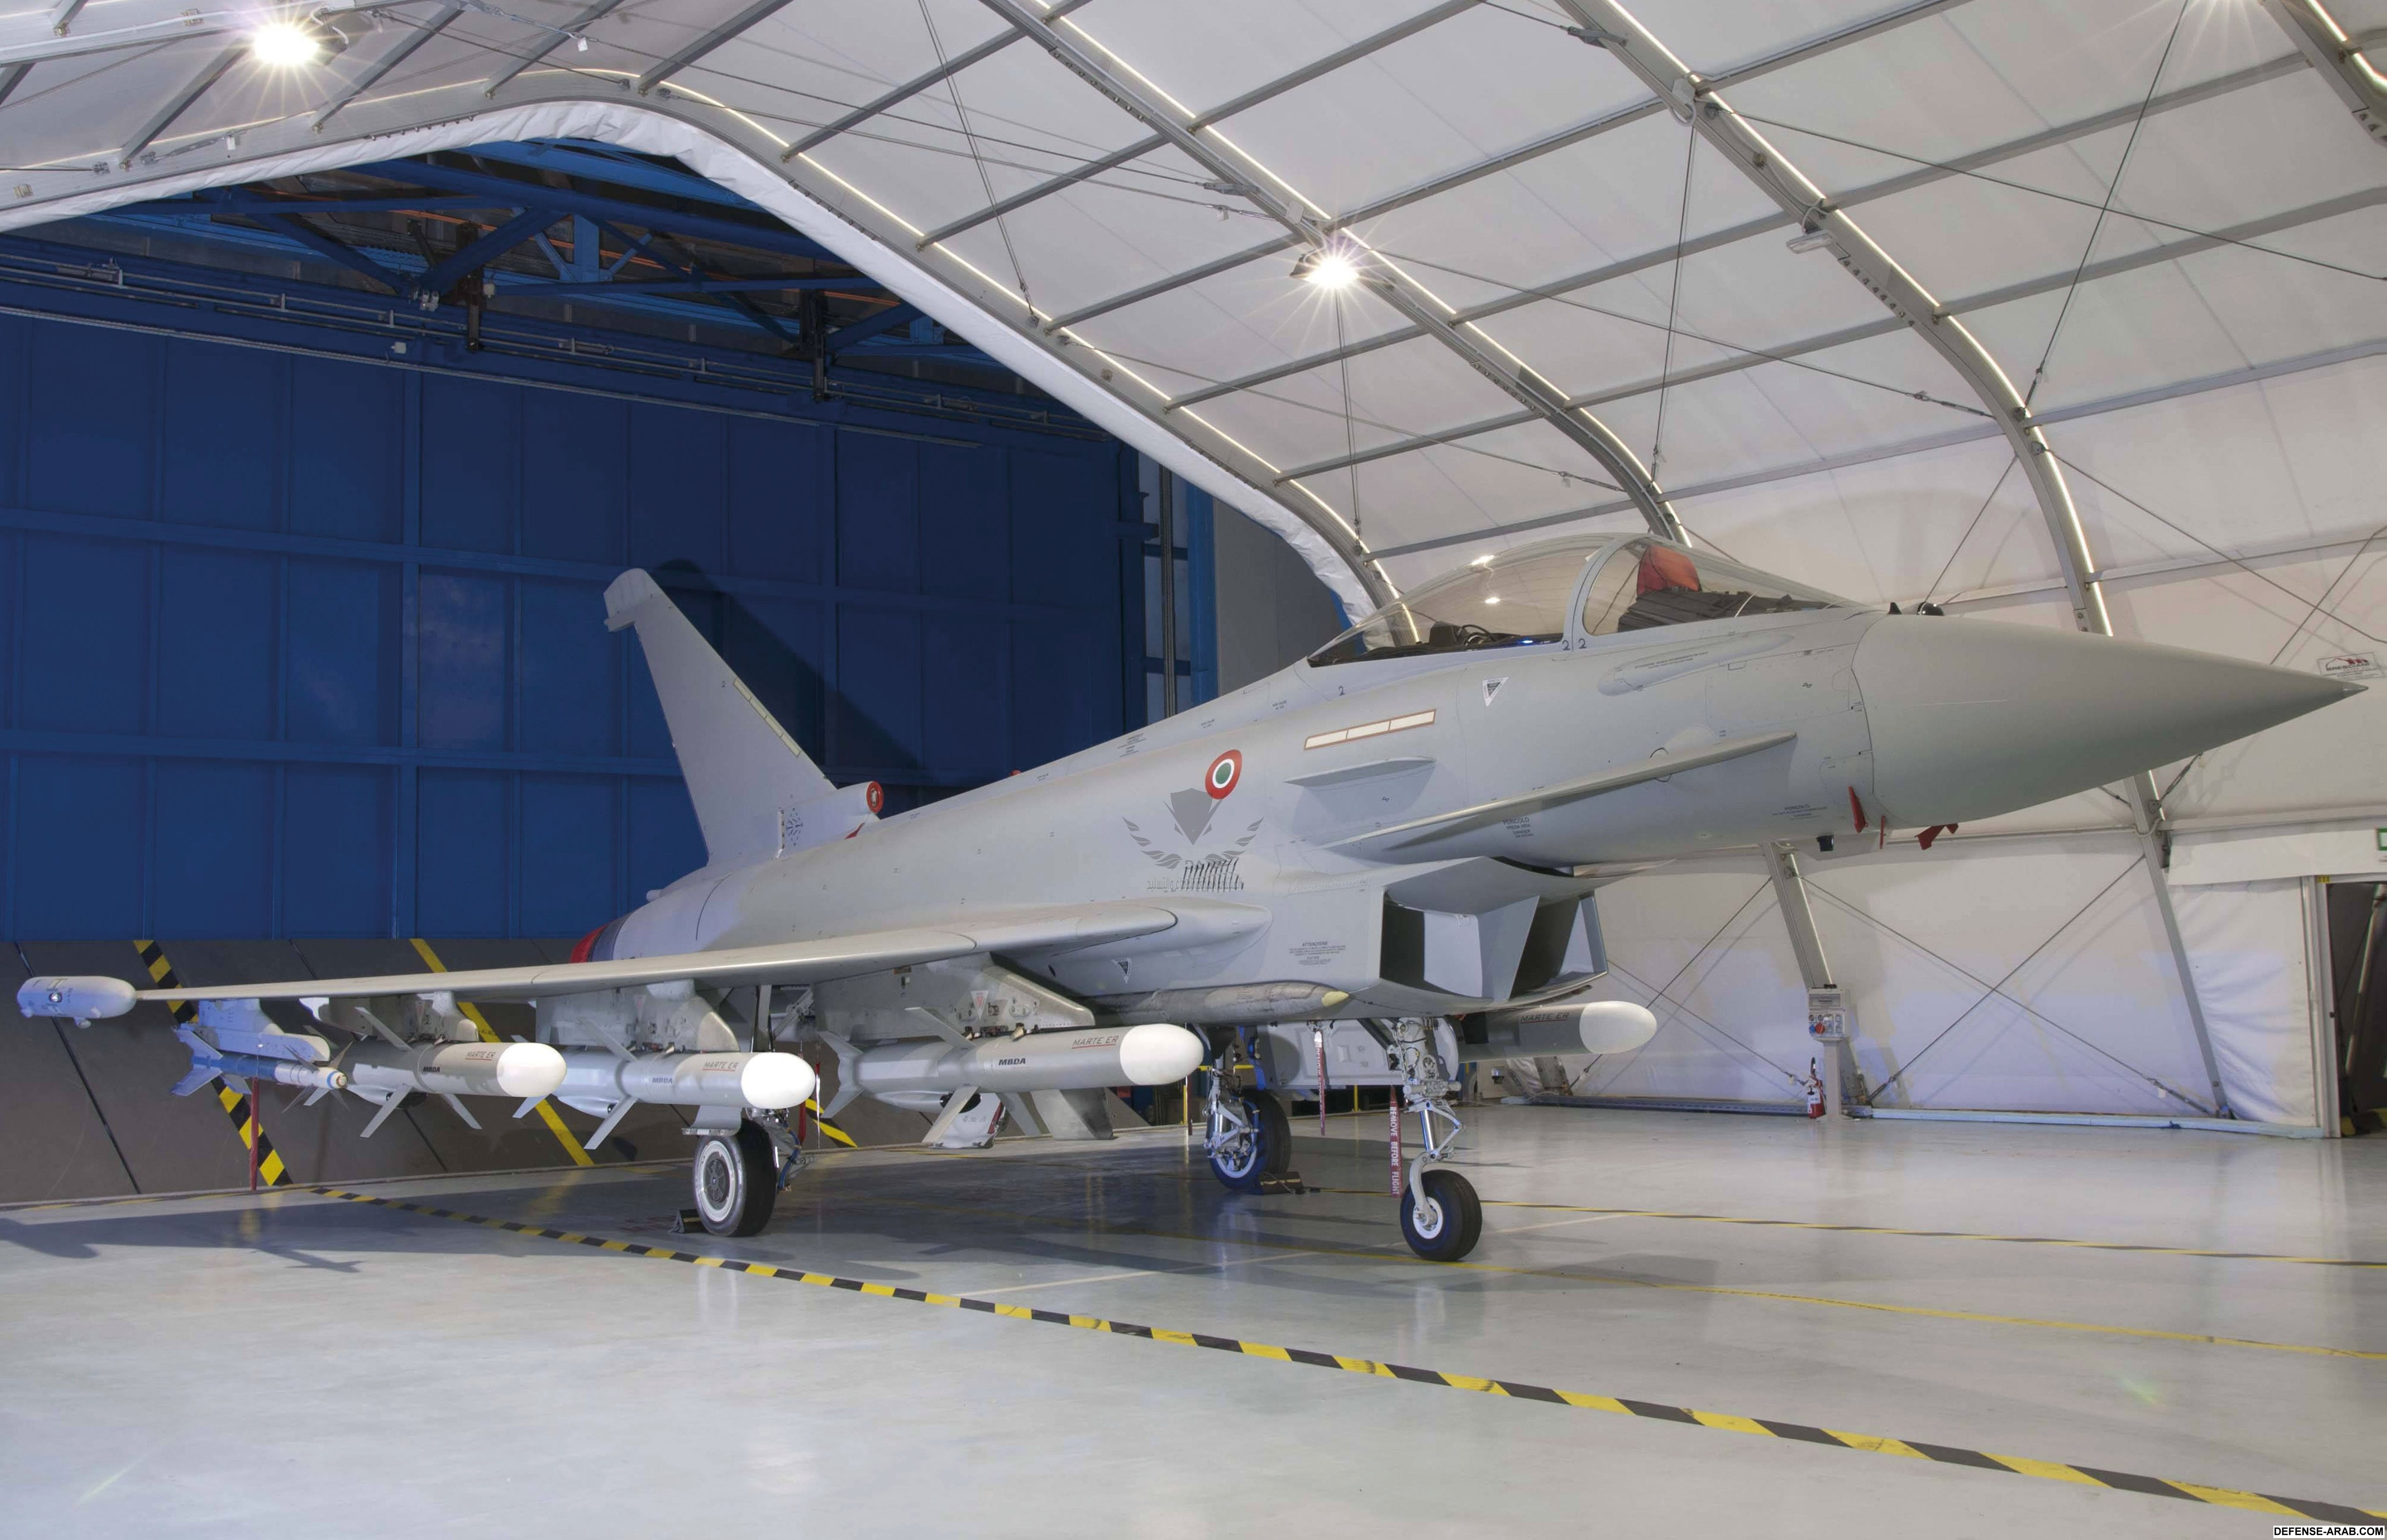 eurofighter-typhoon-strengthens-capability-on-service-1818.jpg